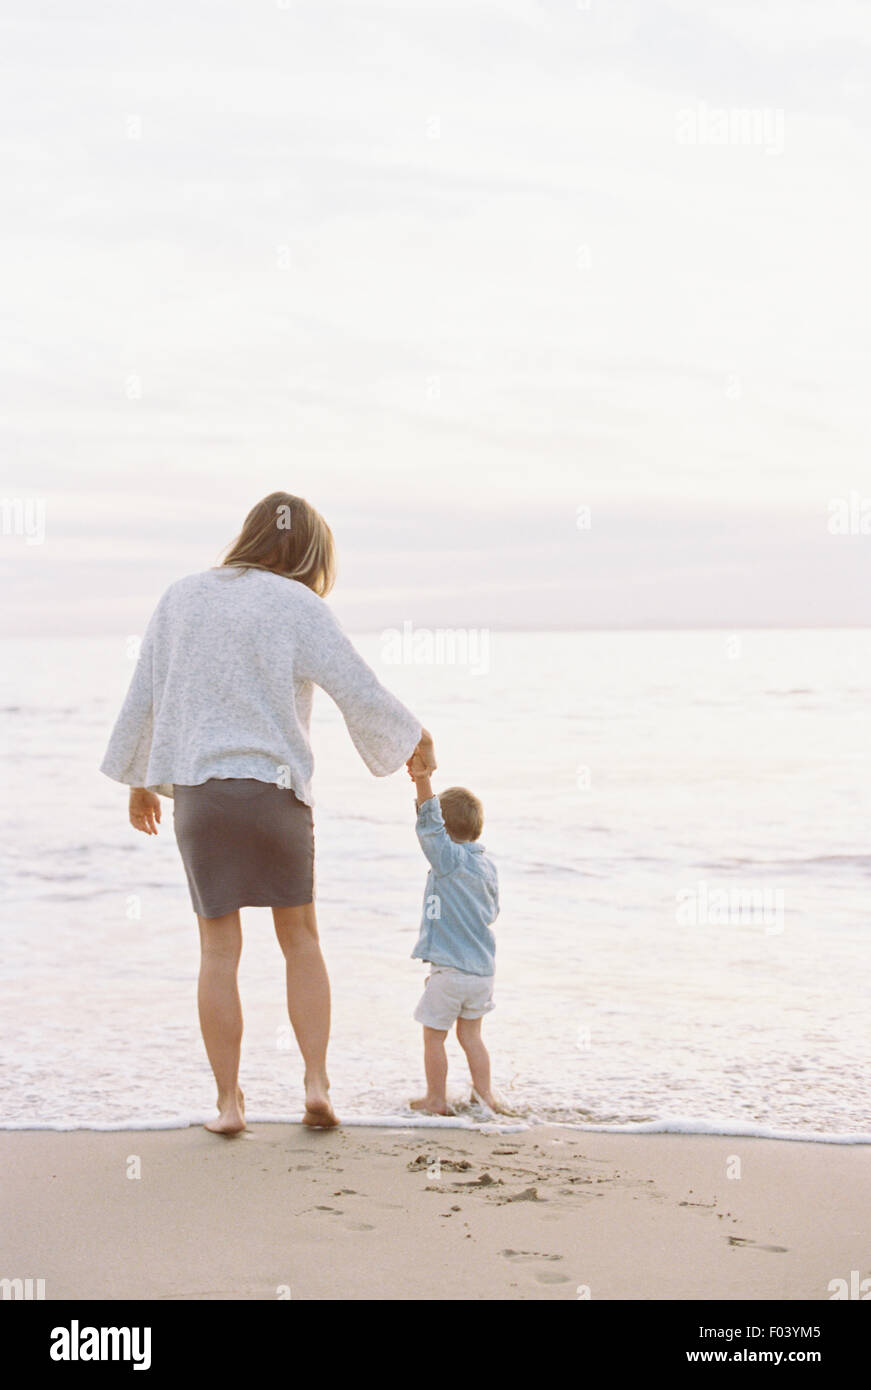 Woman standing on a sandy beach by the ocean, holding her young son's hand. - Stock Image